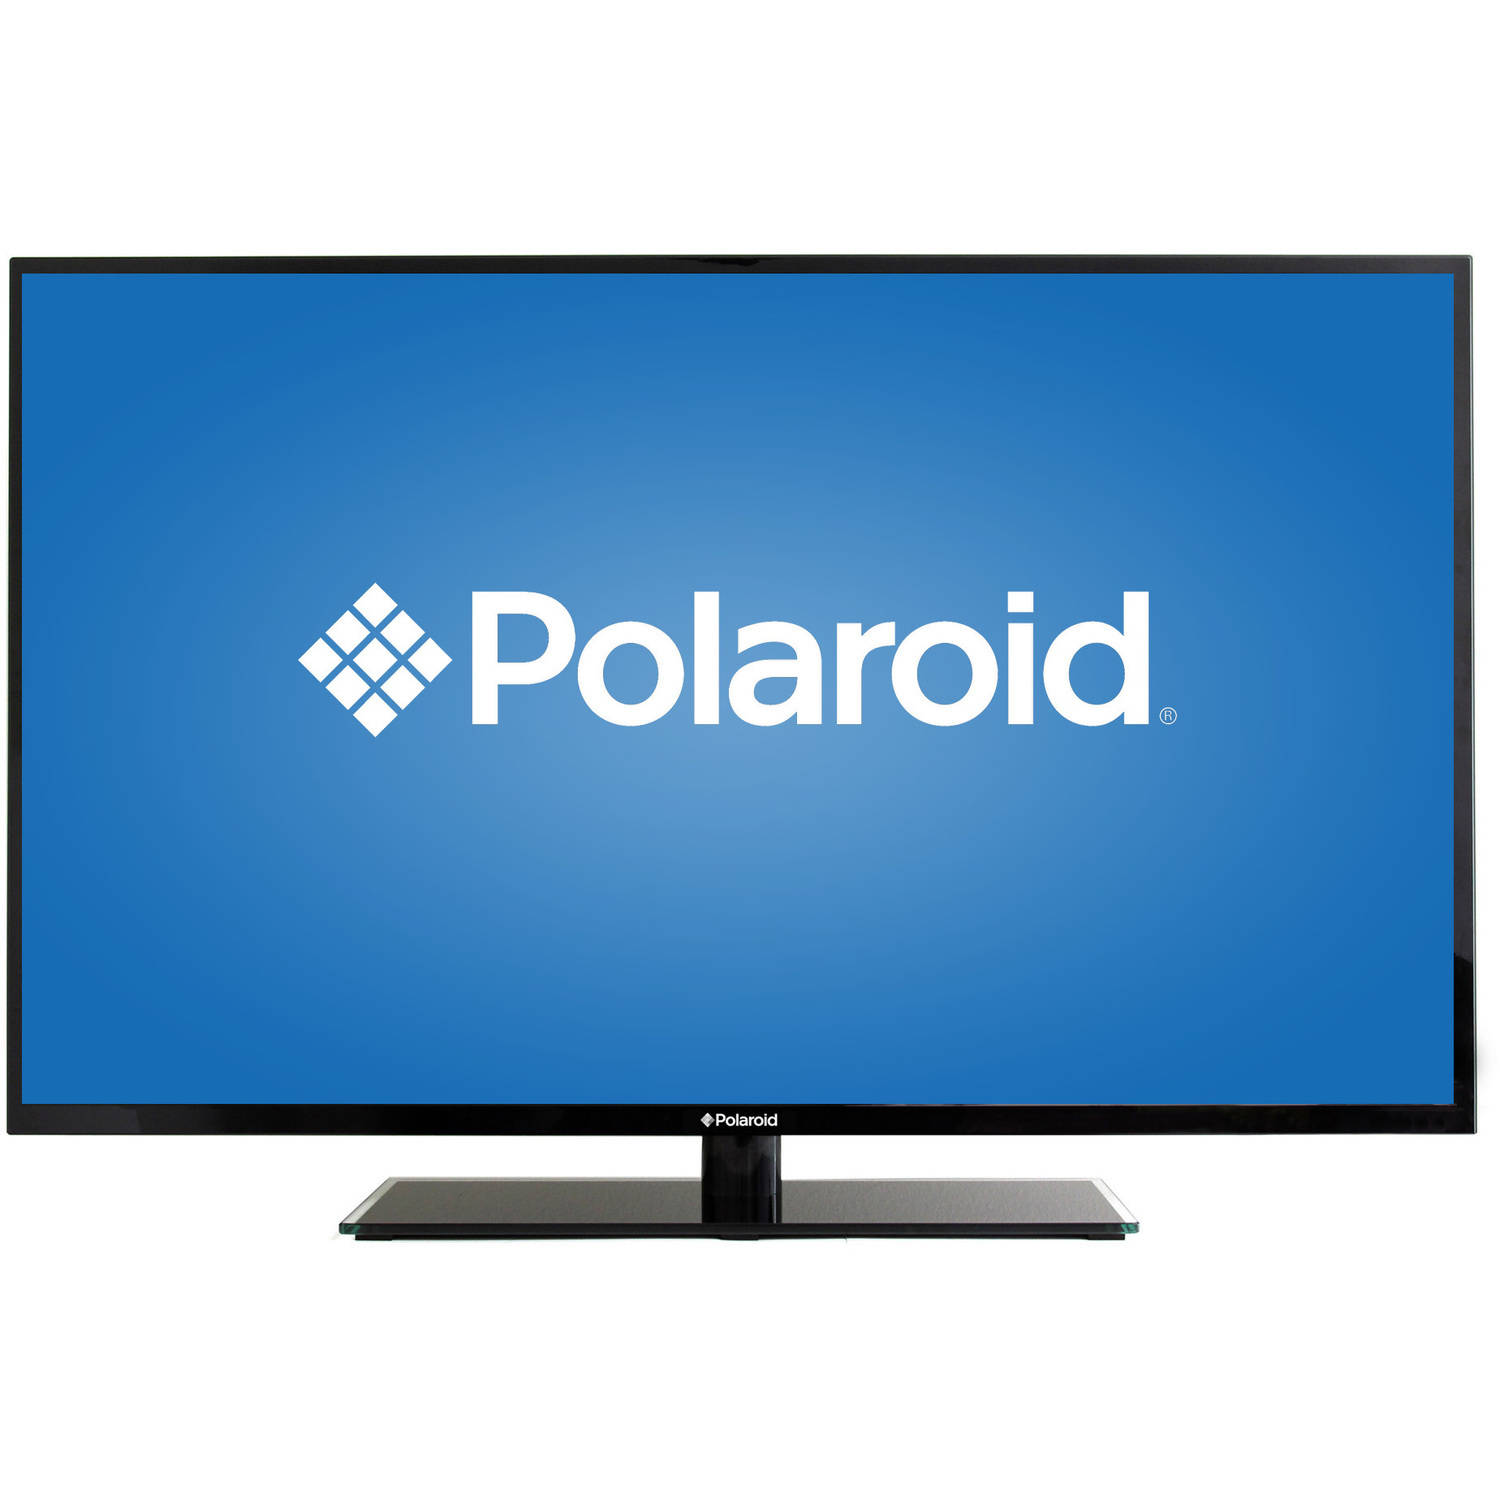 "Polaroid 50GSR3000 50"" 1080p LED HDTV"